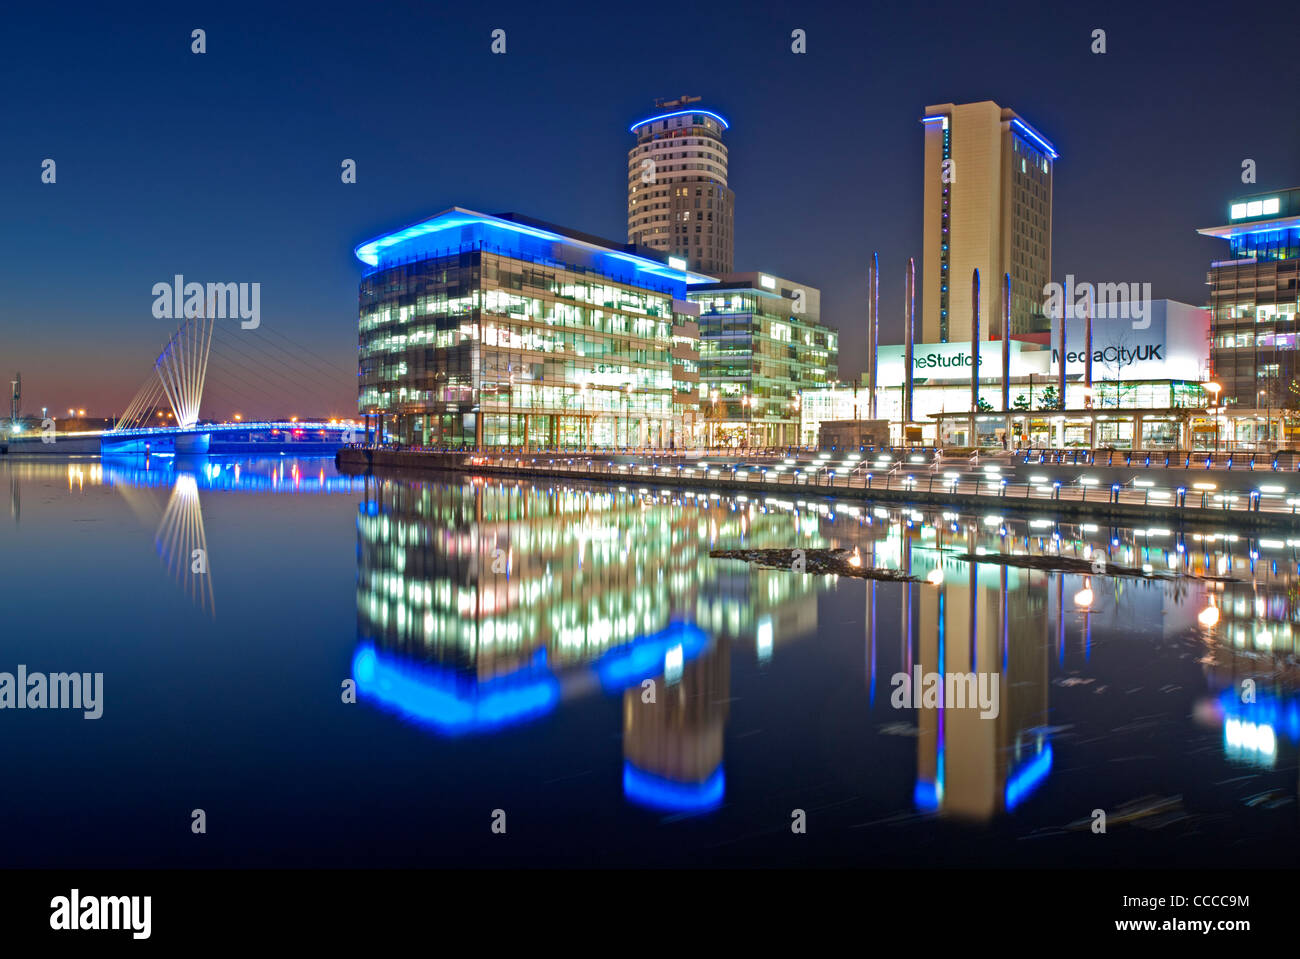 Media City Footbridge and Studios at MediaCityUK at Night, Salford Quays, Greater Manchester, England, UK - Stock Image